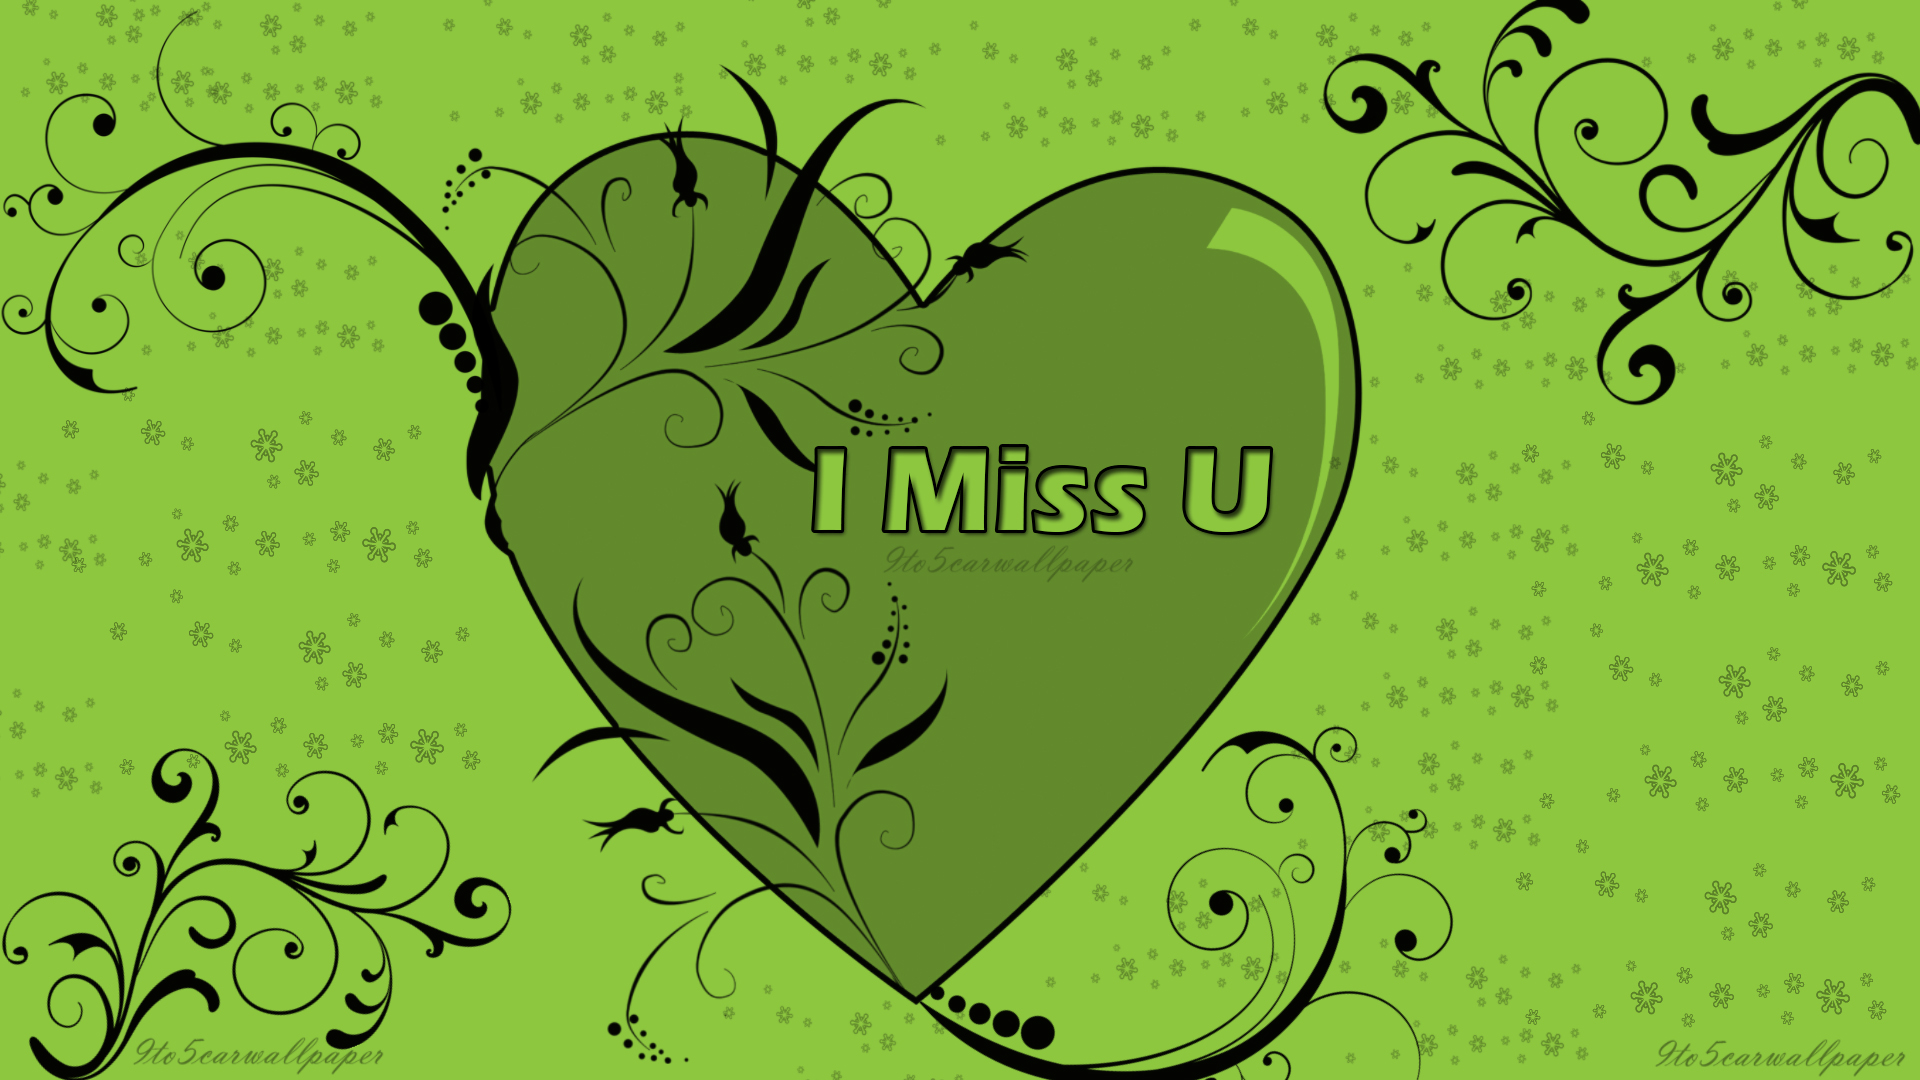 Miss U Love Wallpaper Hd : Beautiful I Miss You Pictures & Images 2017 car Wallpapers